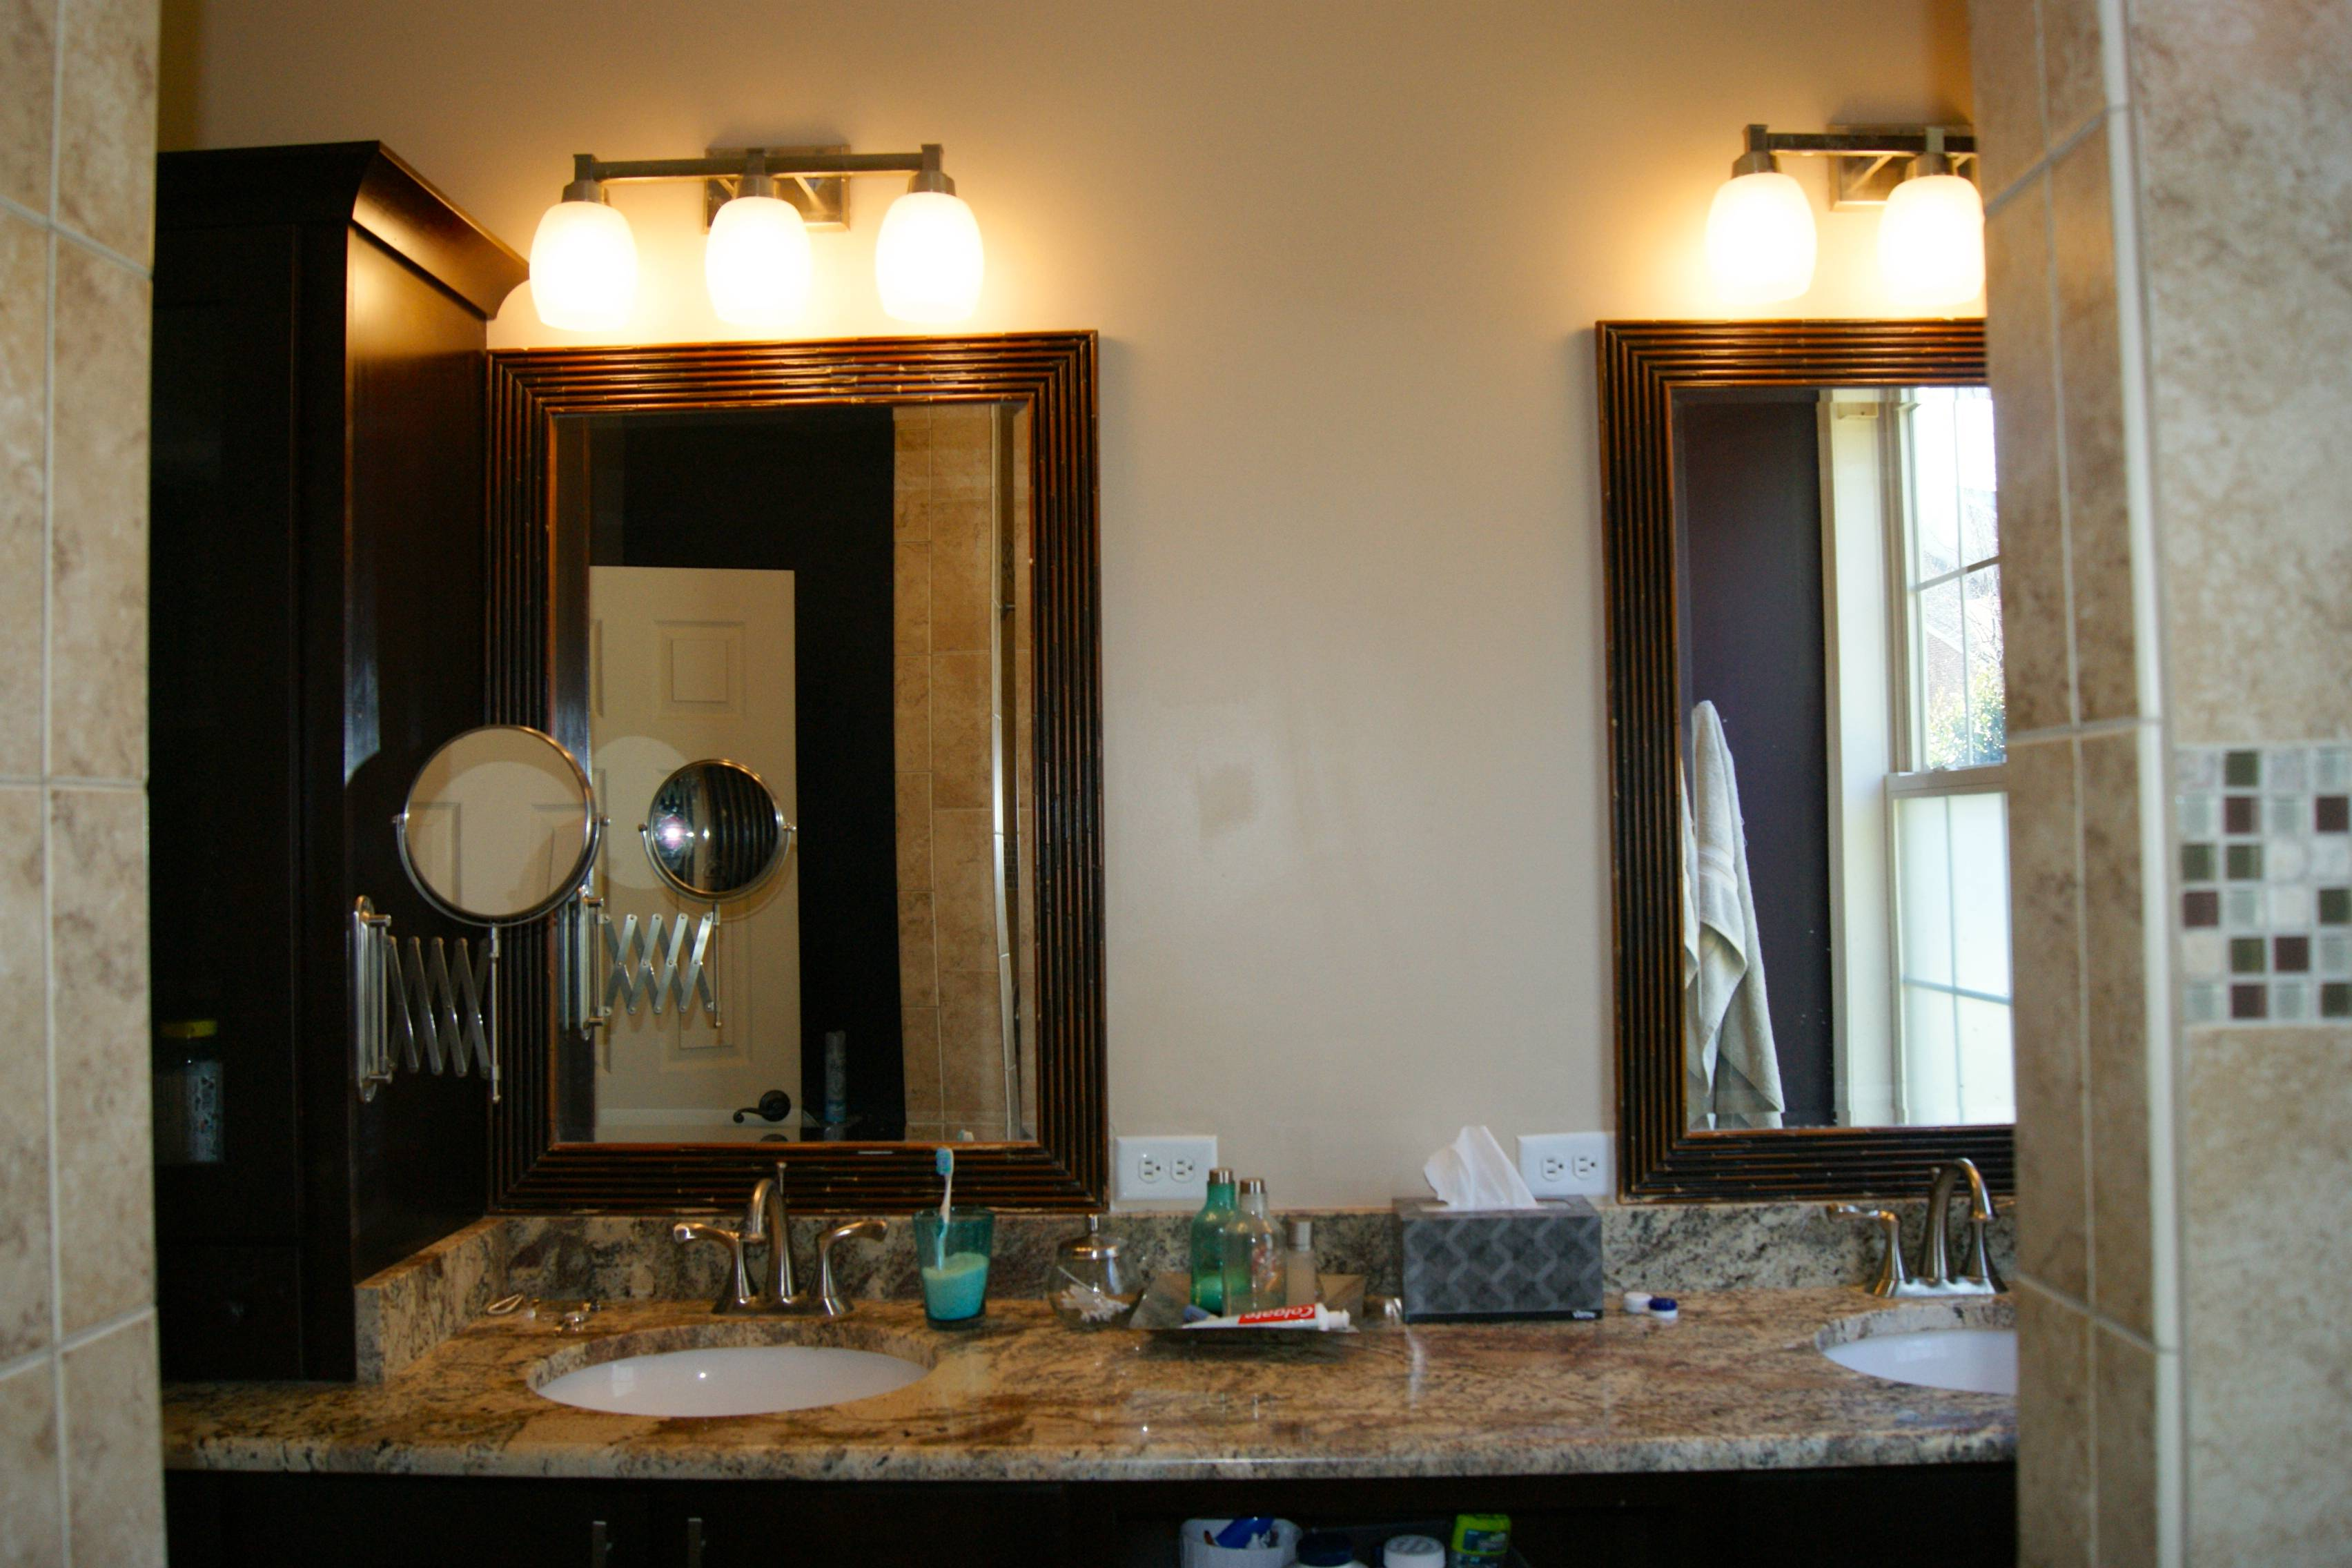 Bathroom Remodel With Shelf Before